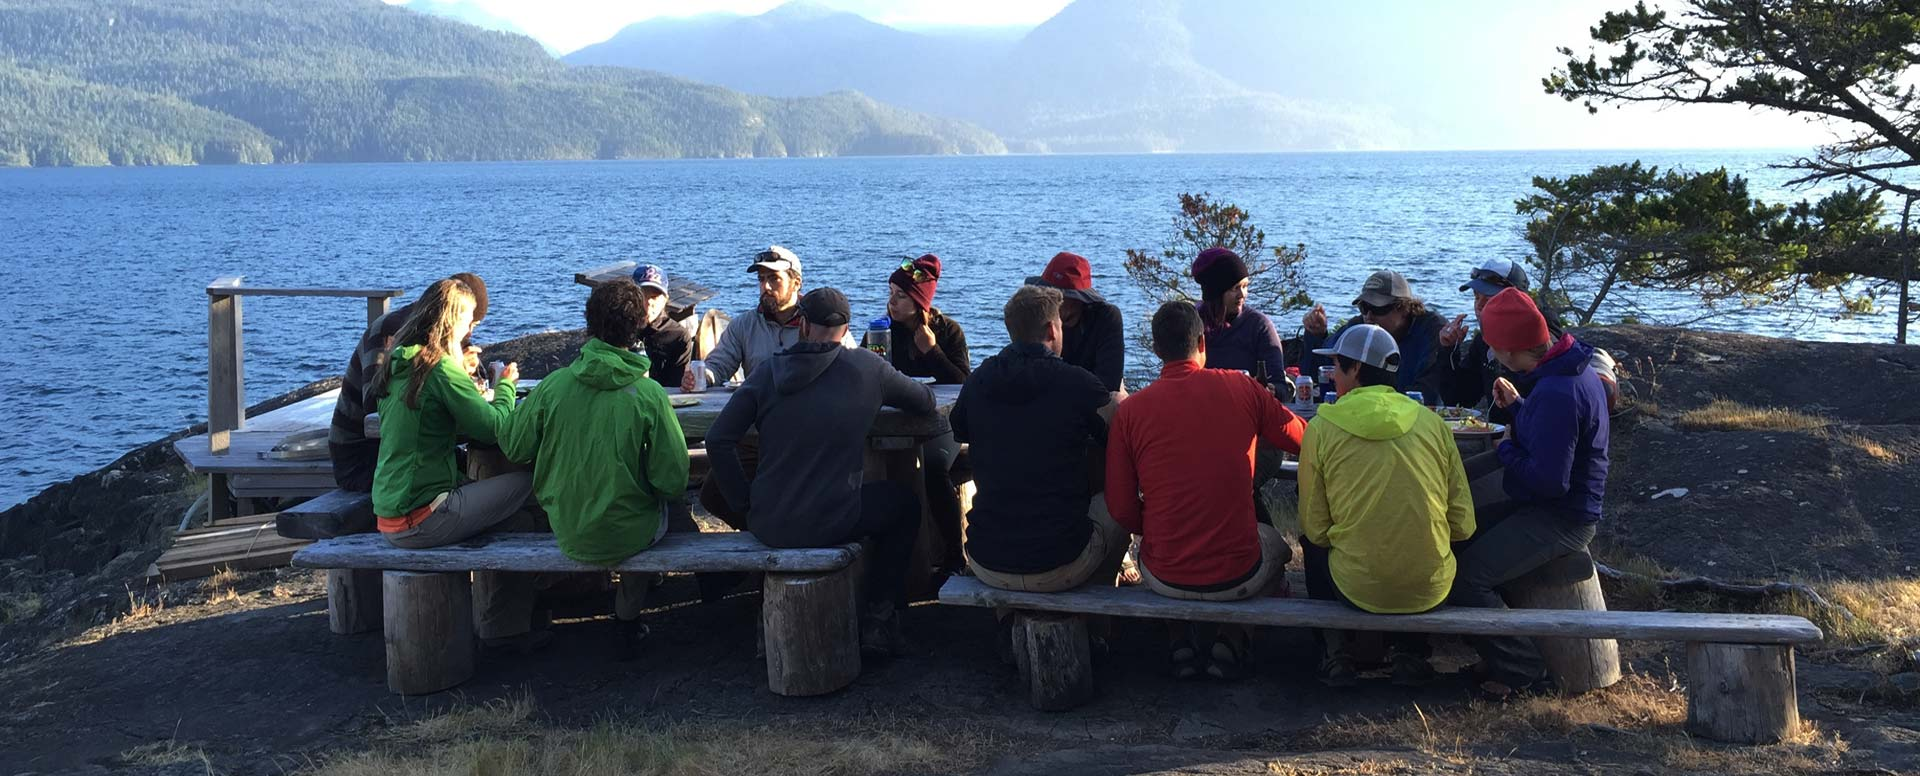 spirit of the west kayak guides